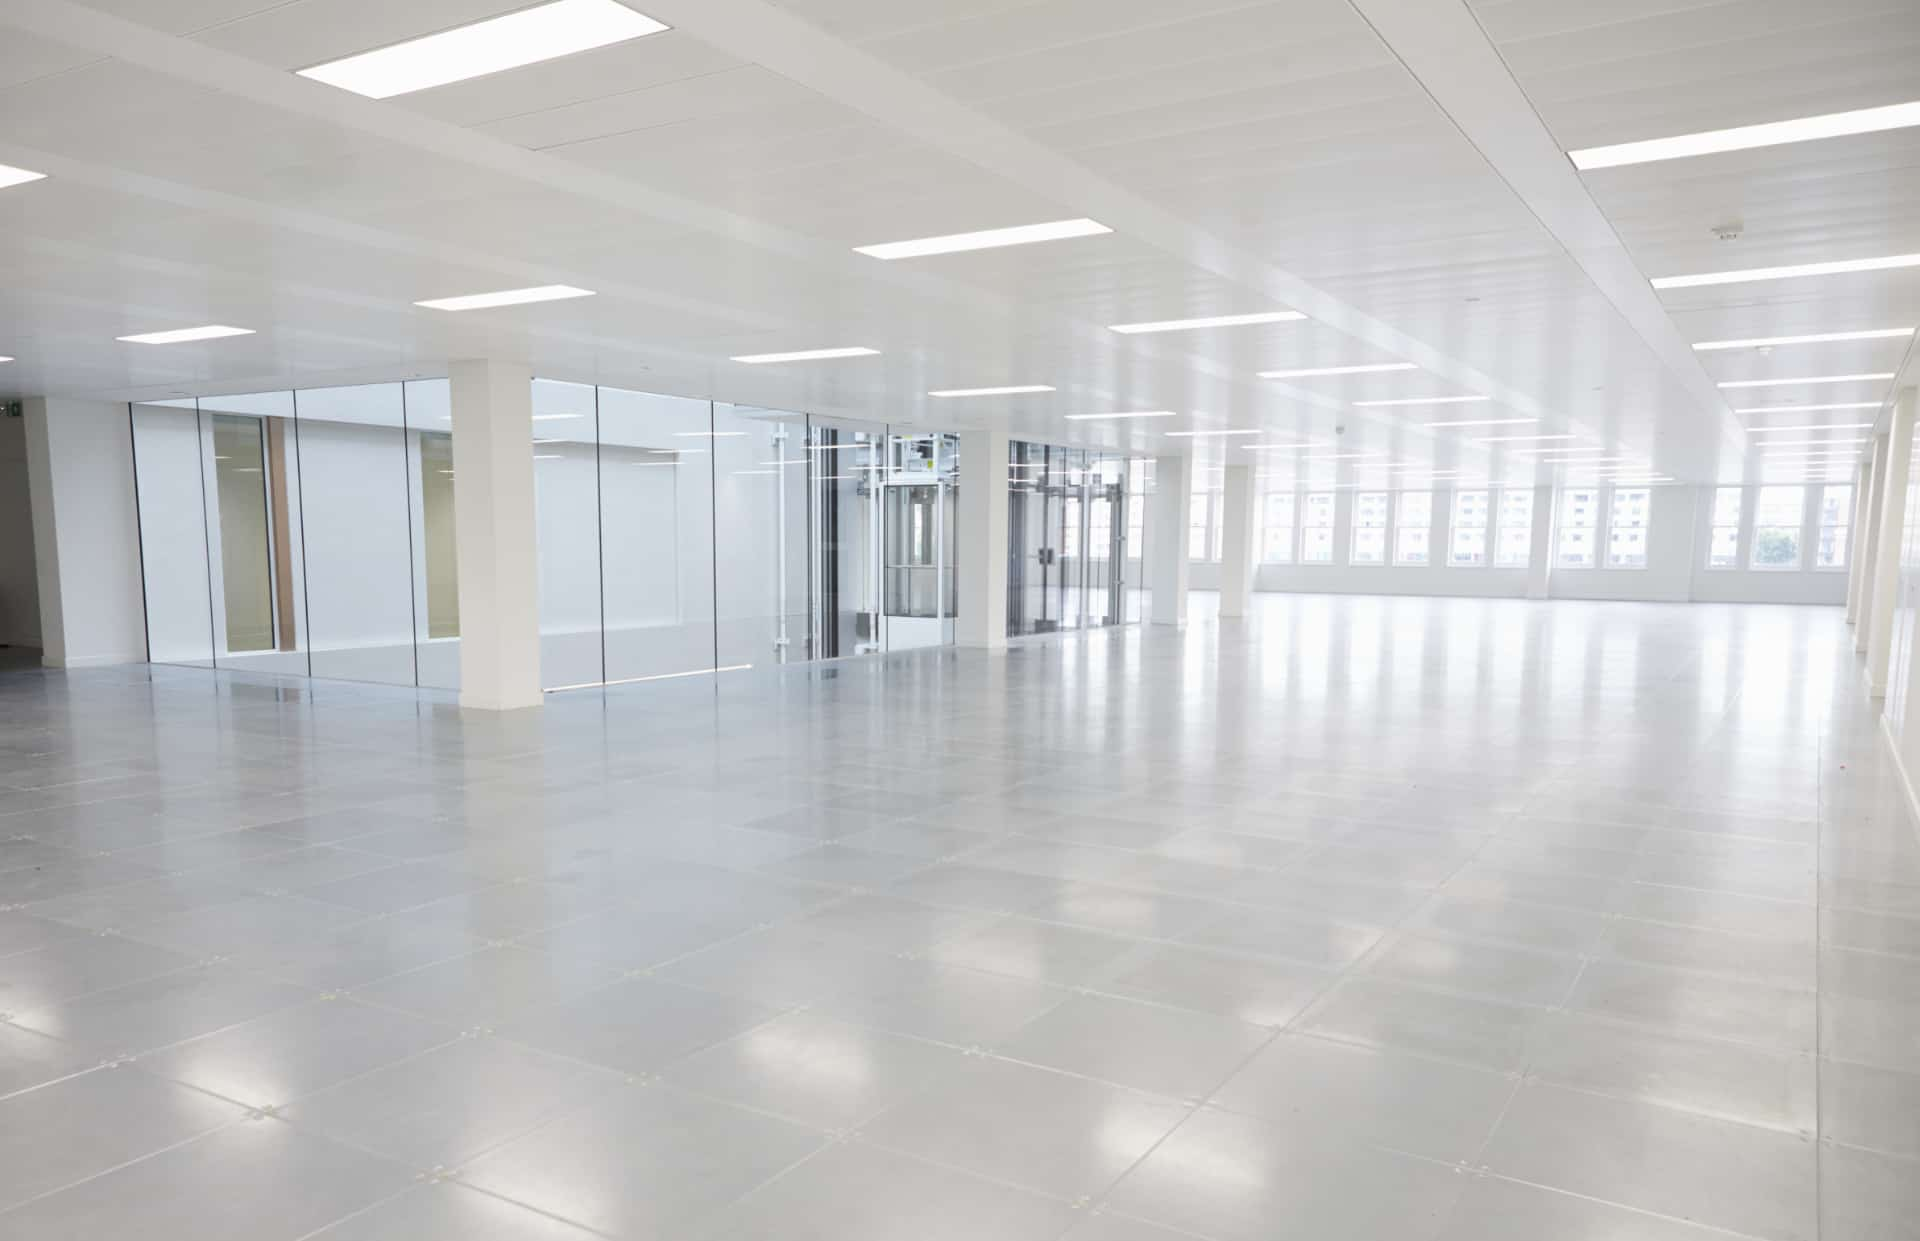 commercial led lighting in large white room